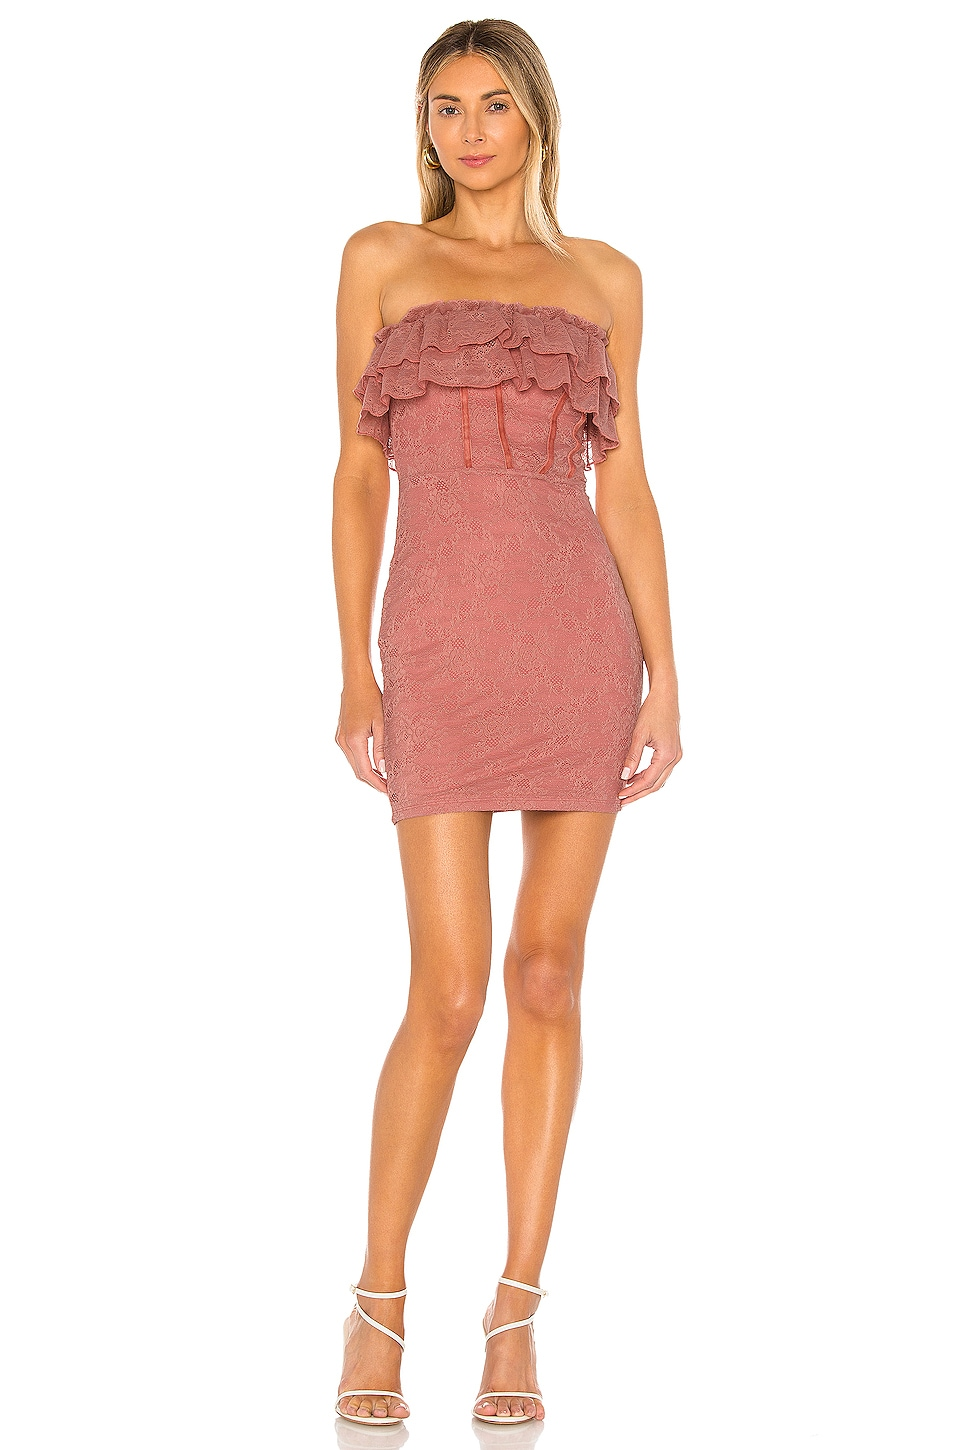 MAJORELLE Coda Mini Dress in Blush